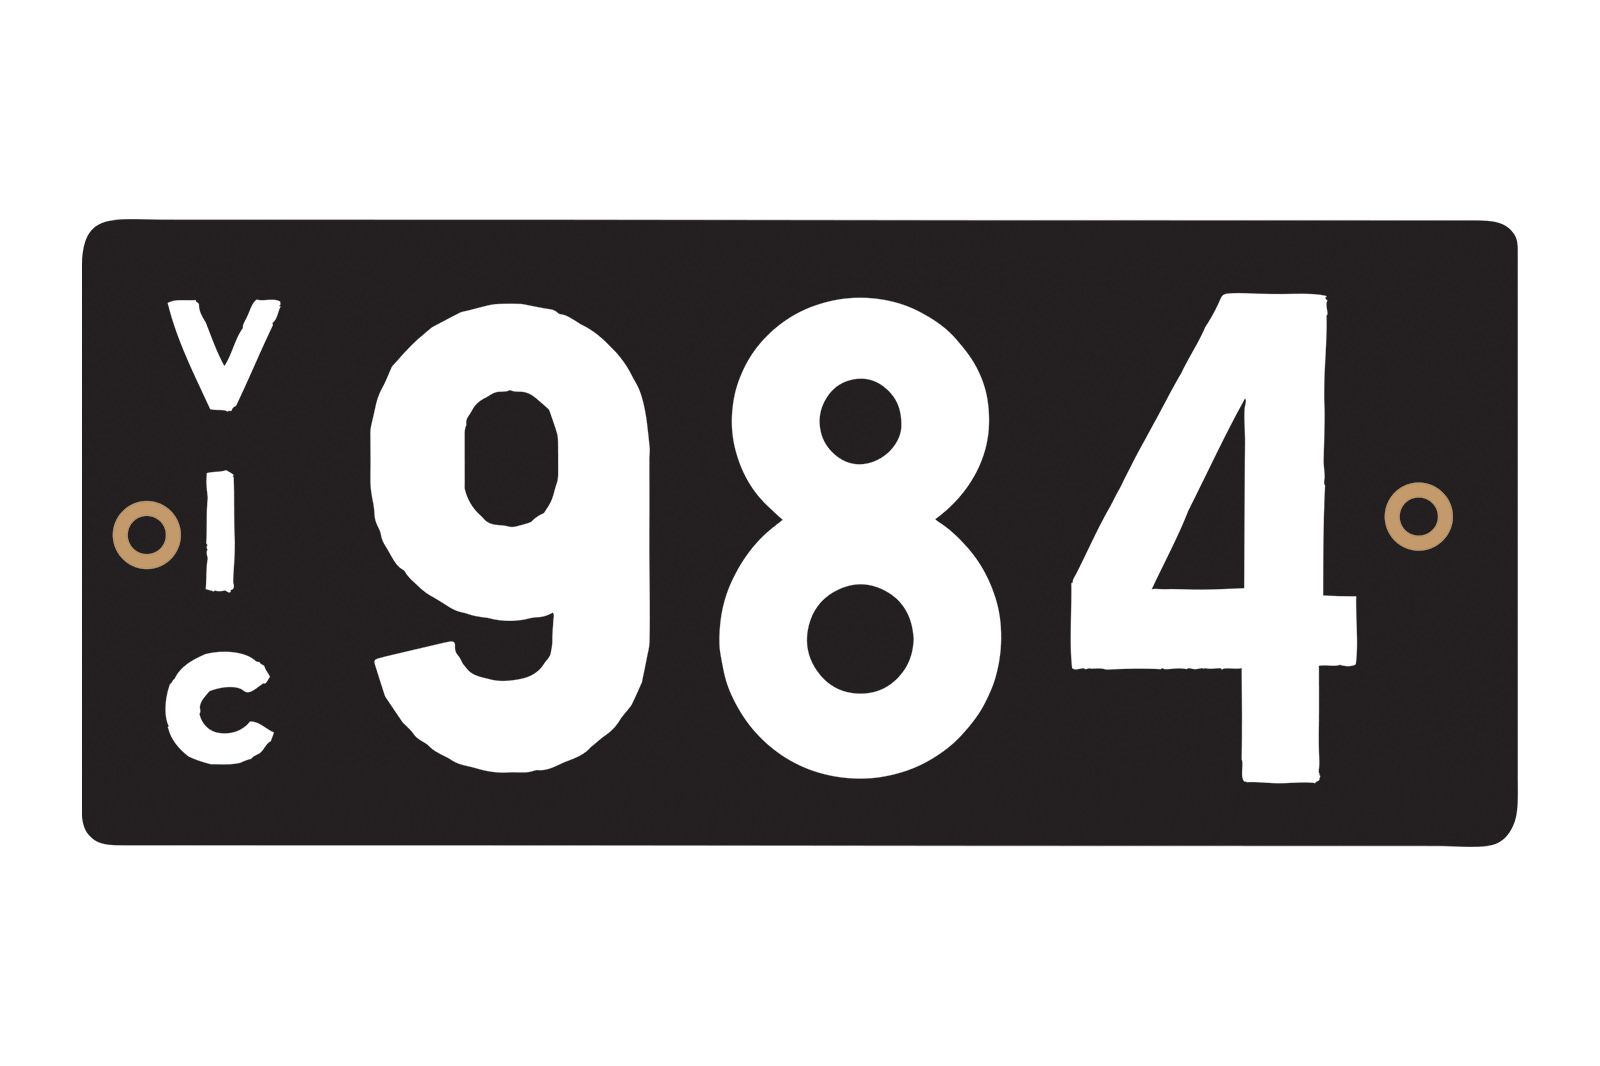 Number Plates - Victorian Heritage Numerical Number Plates '984'